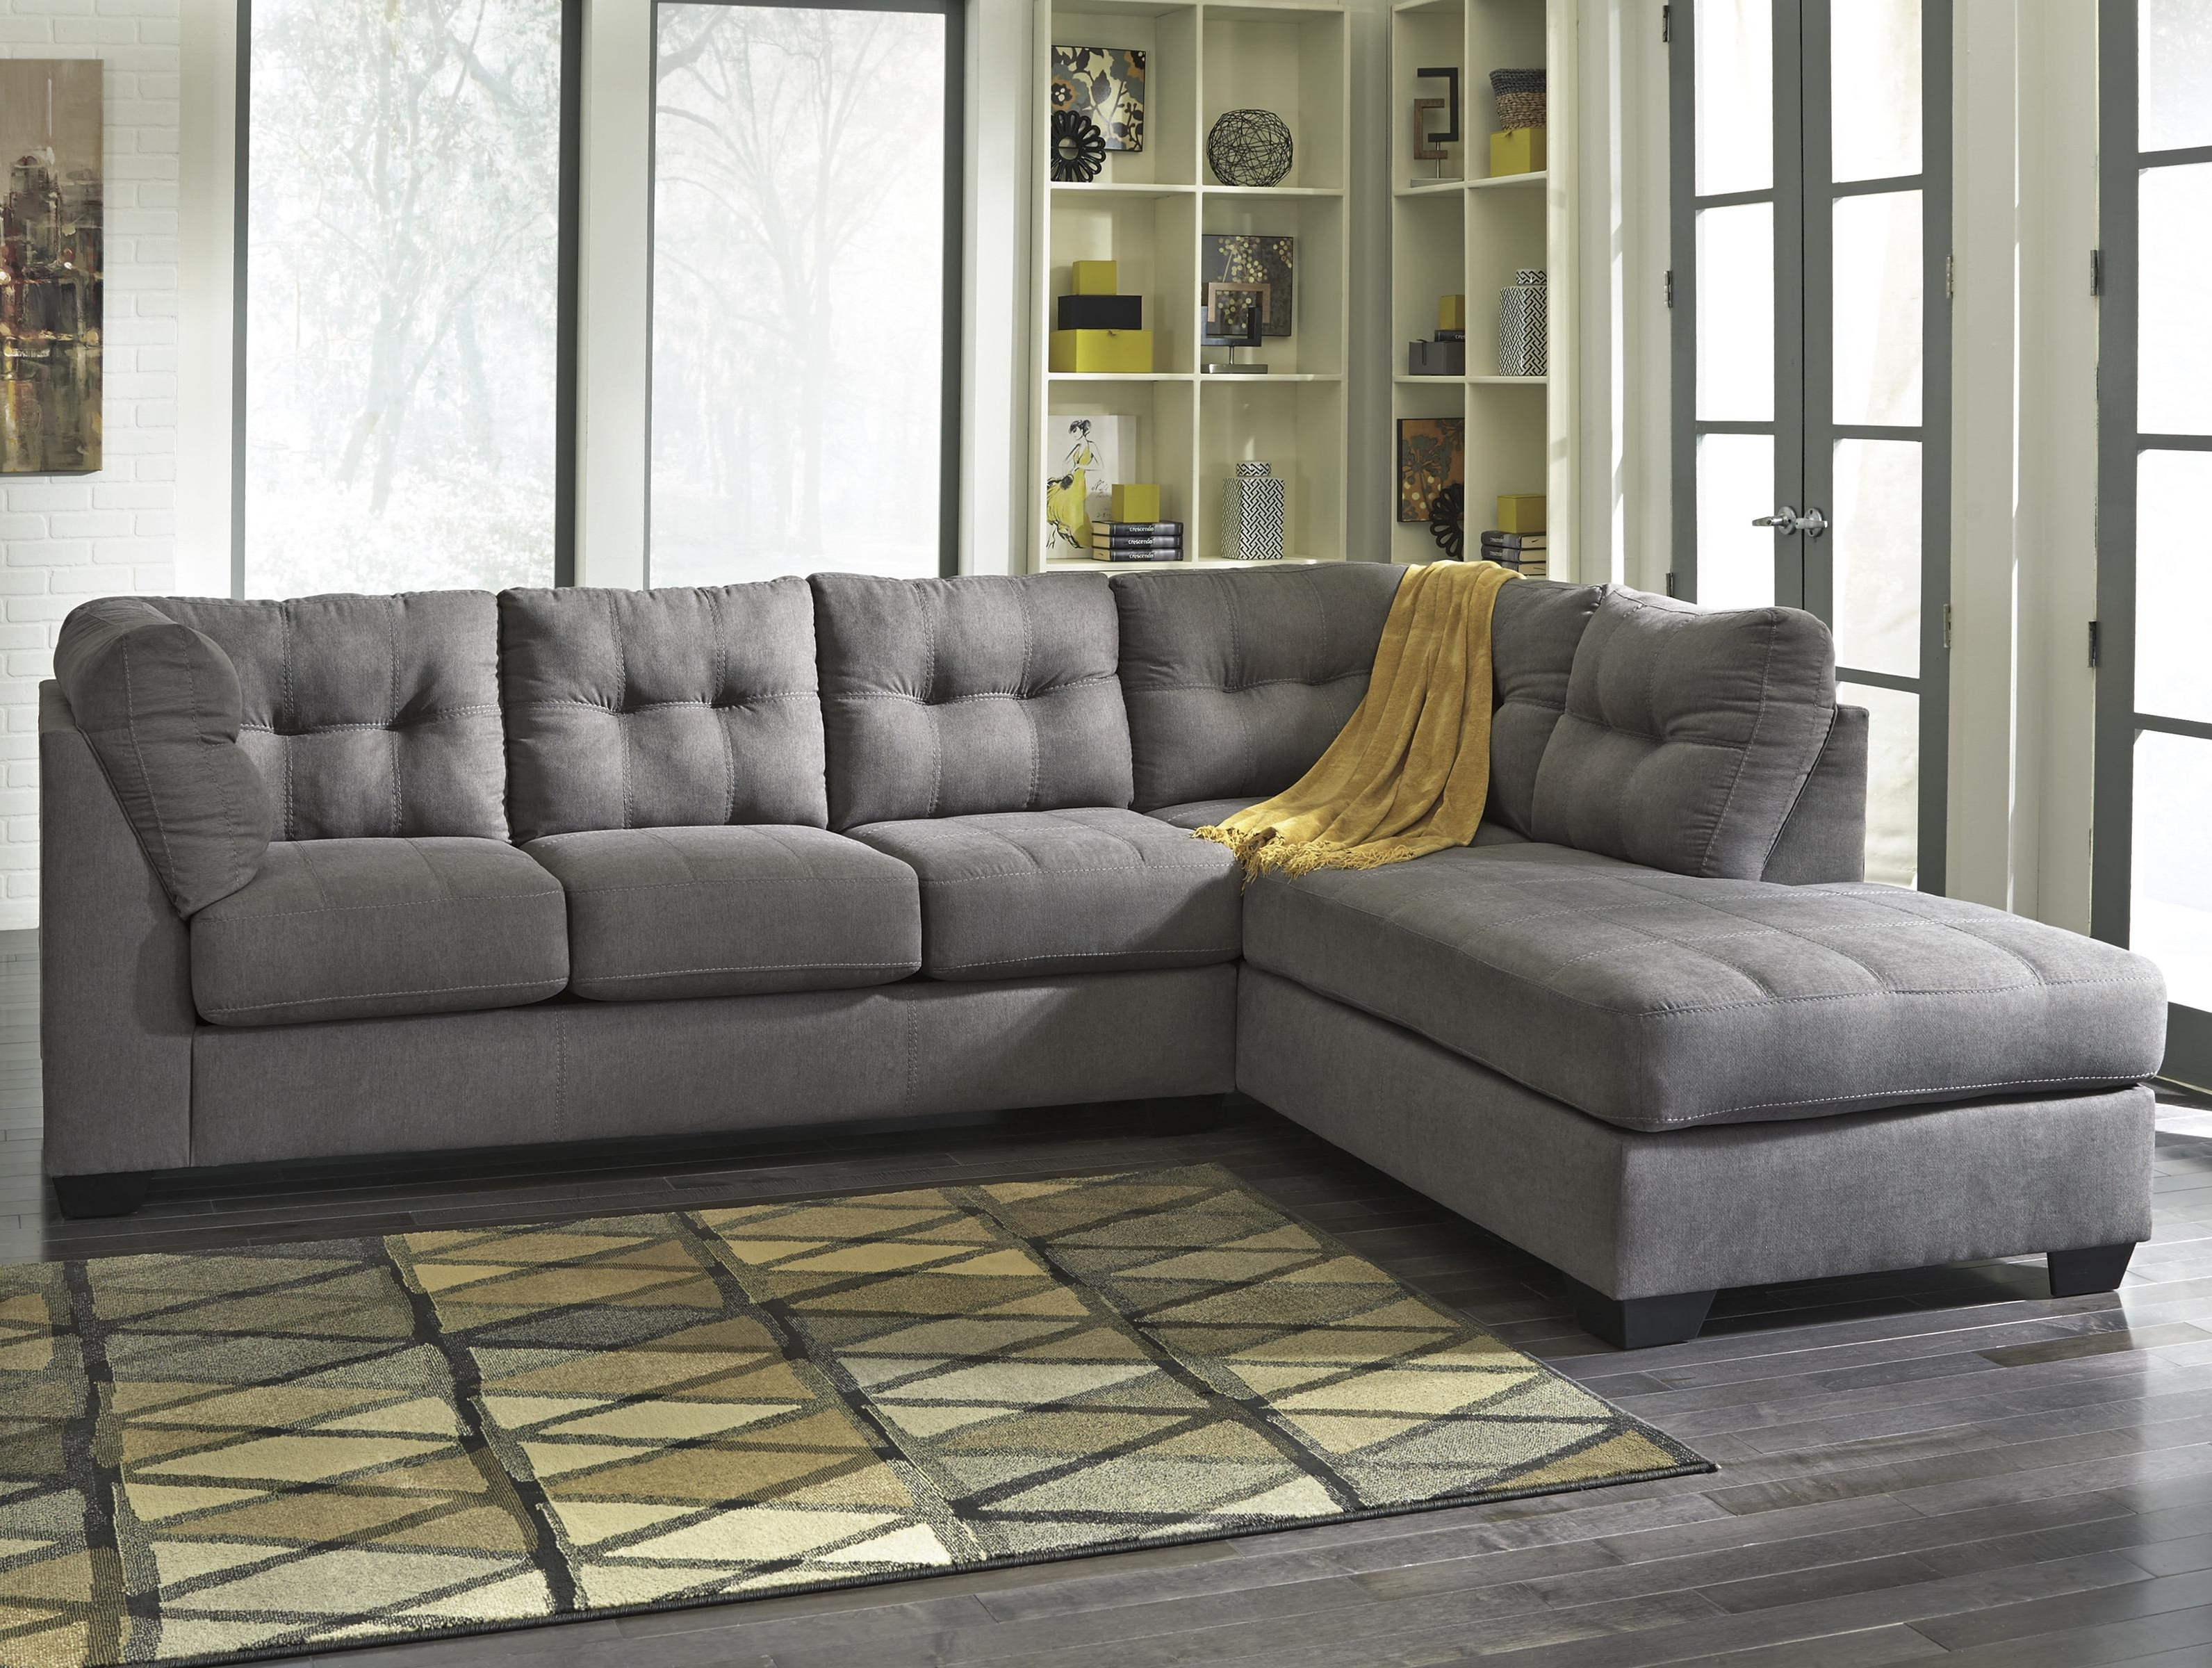 Well Known Benchcraftashley Maier – Charcoal 2 Piece Sectional With Left Within Ashley Chaise Sofas (View 15 of 15)